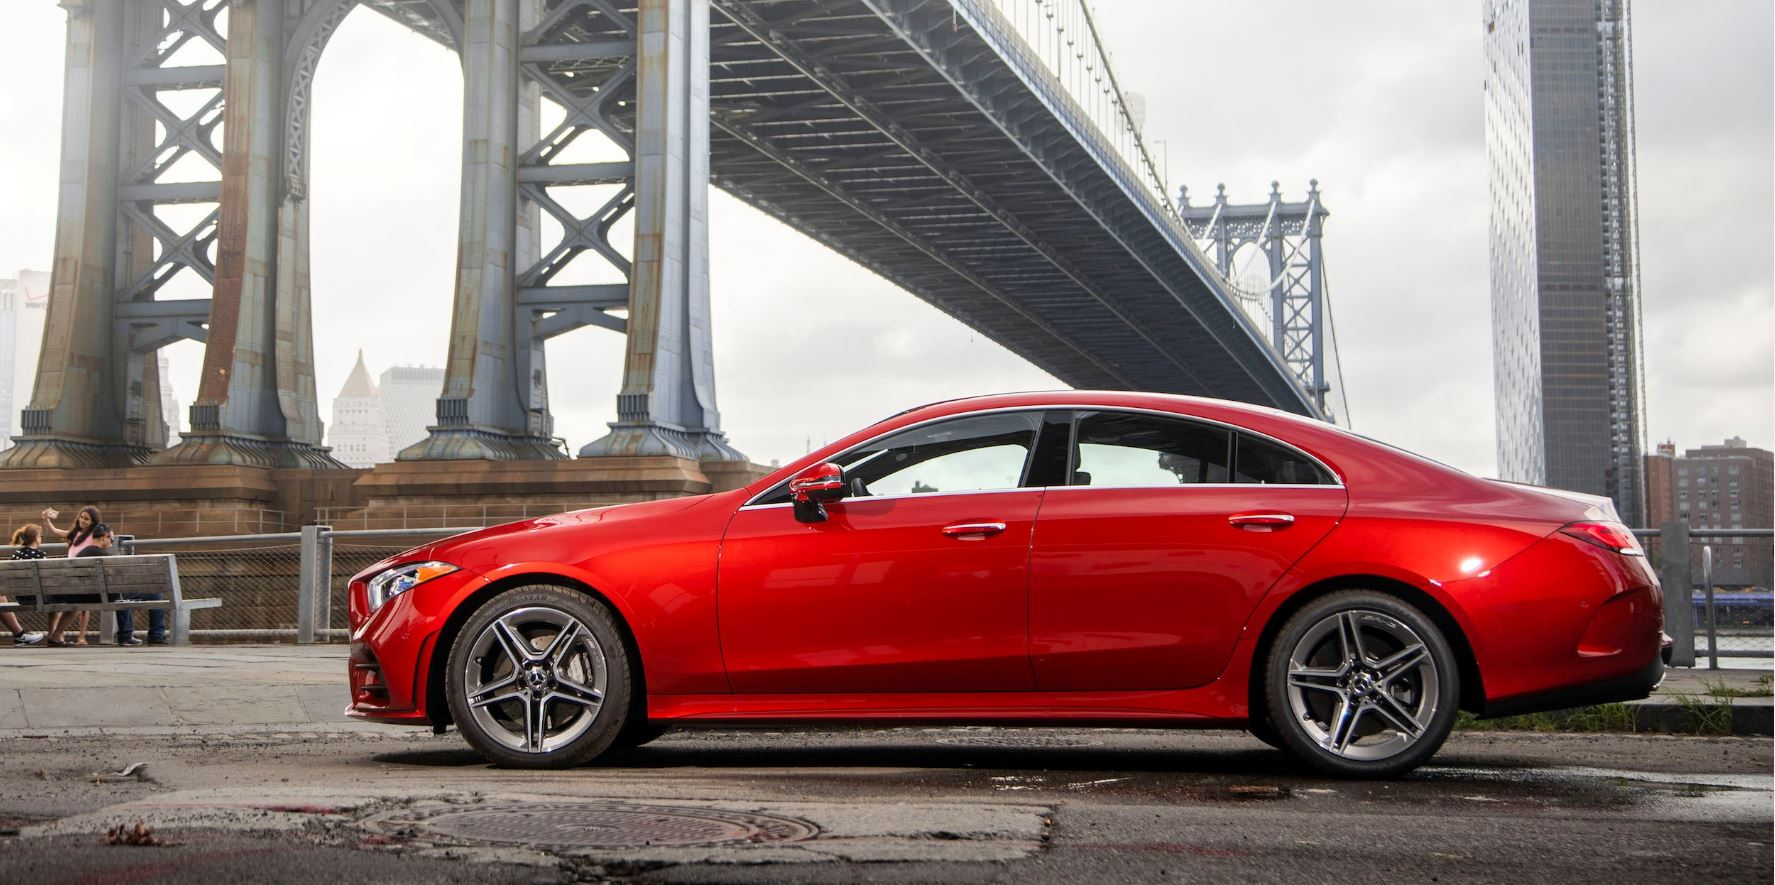 Escaping From New York In The Sleek And Stylish New 2019 Mercedes Benz CLS